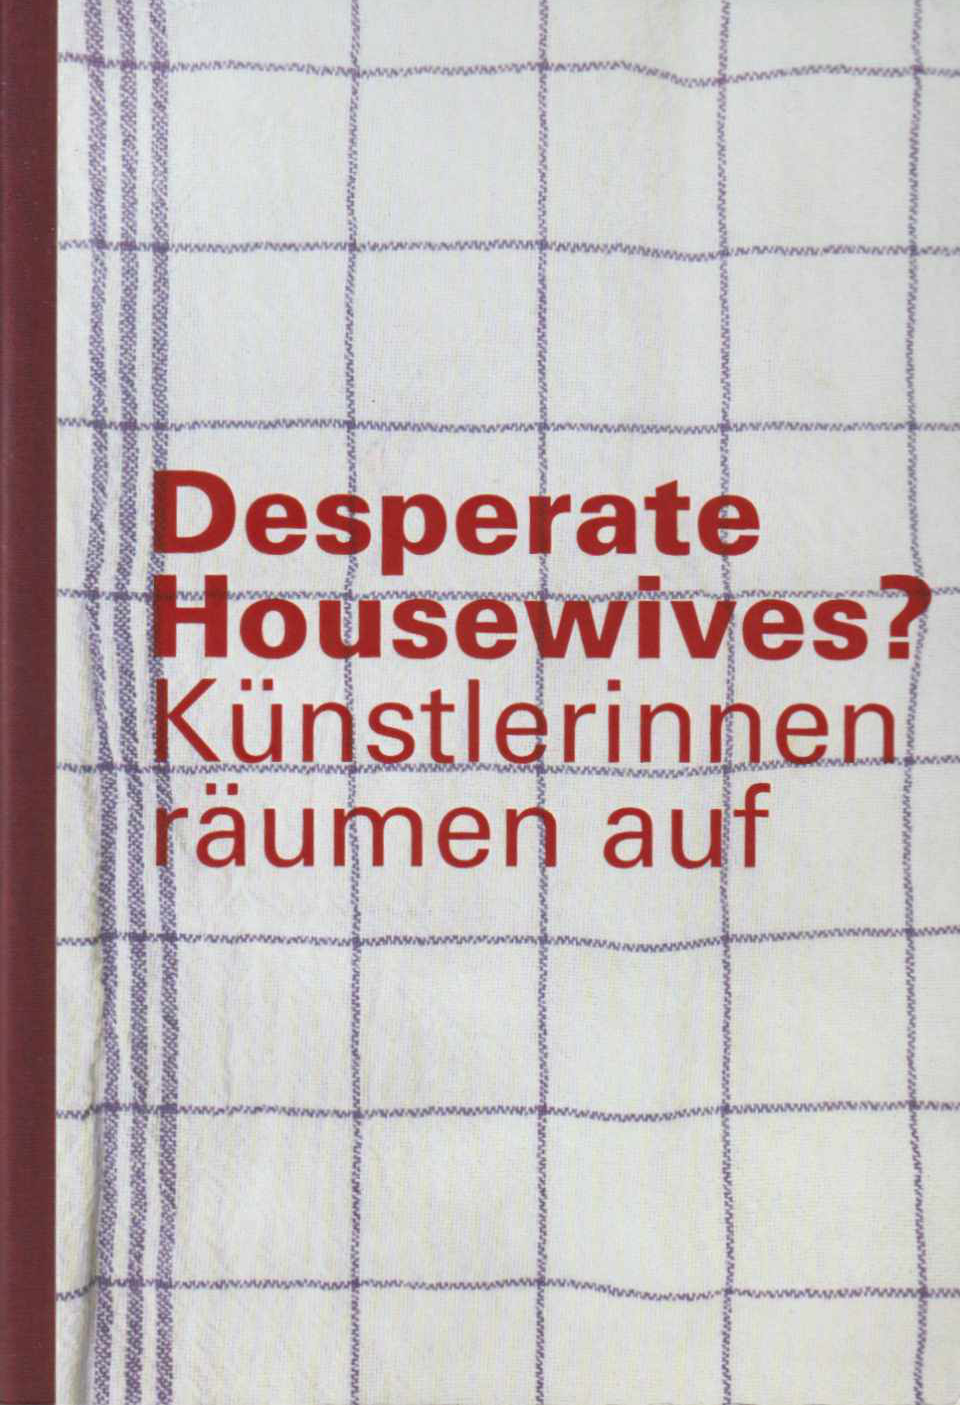 Desperate Housewives Katalog